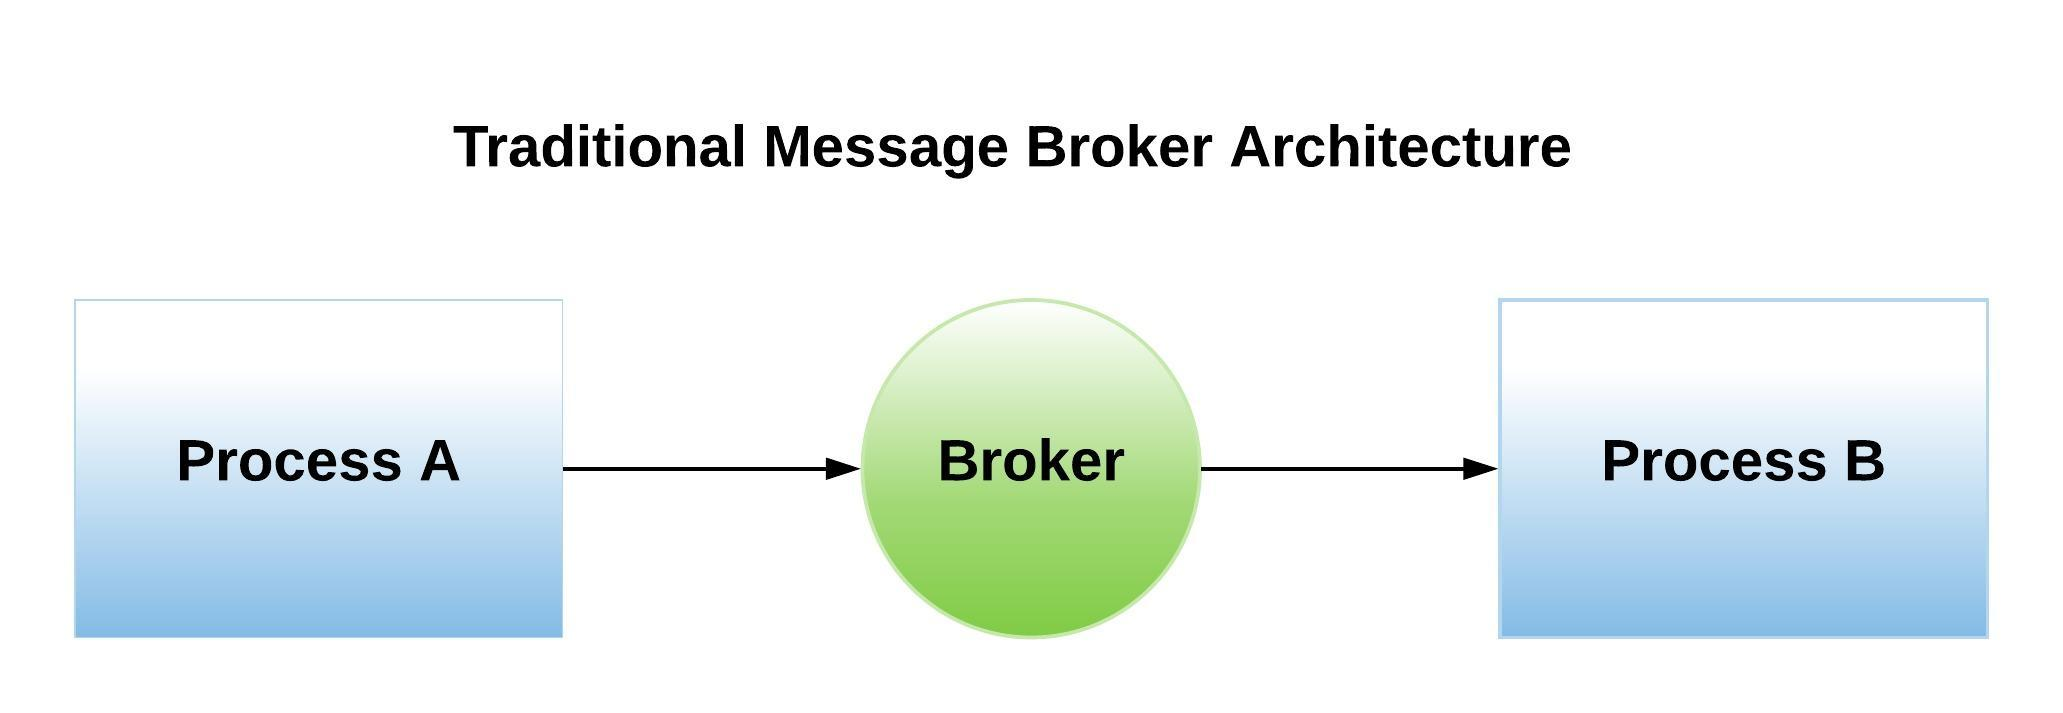 Traditional Message Broker